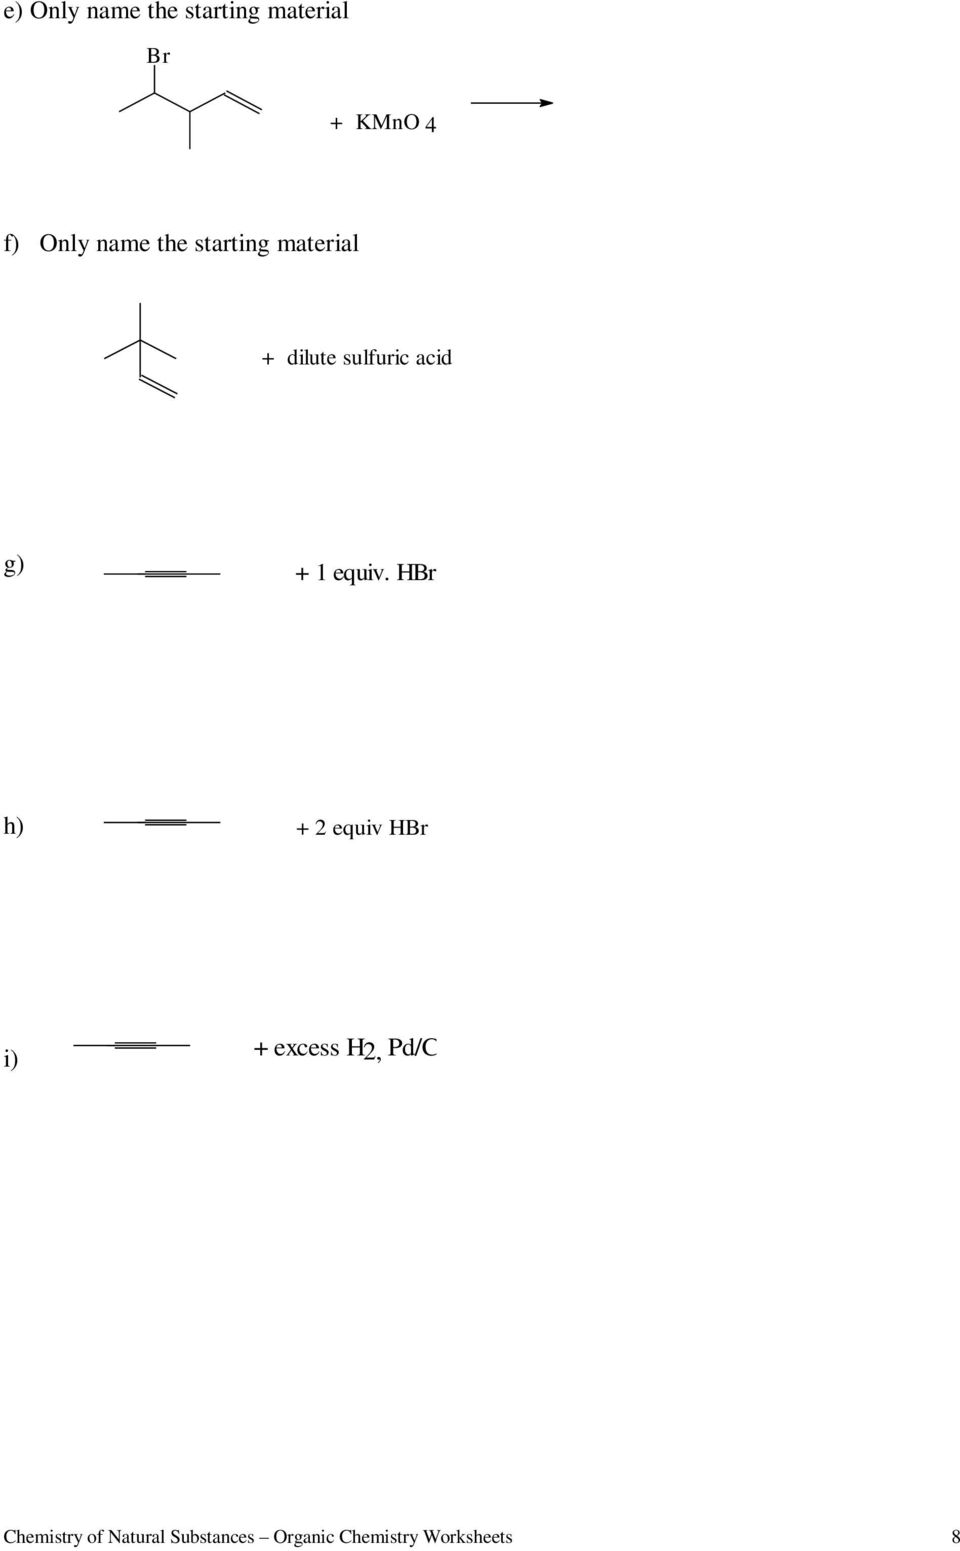 medium resolution of Worksheets for Organic Chemistry - PDF Free Download